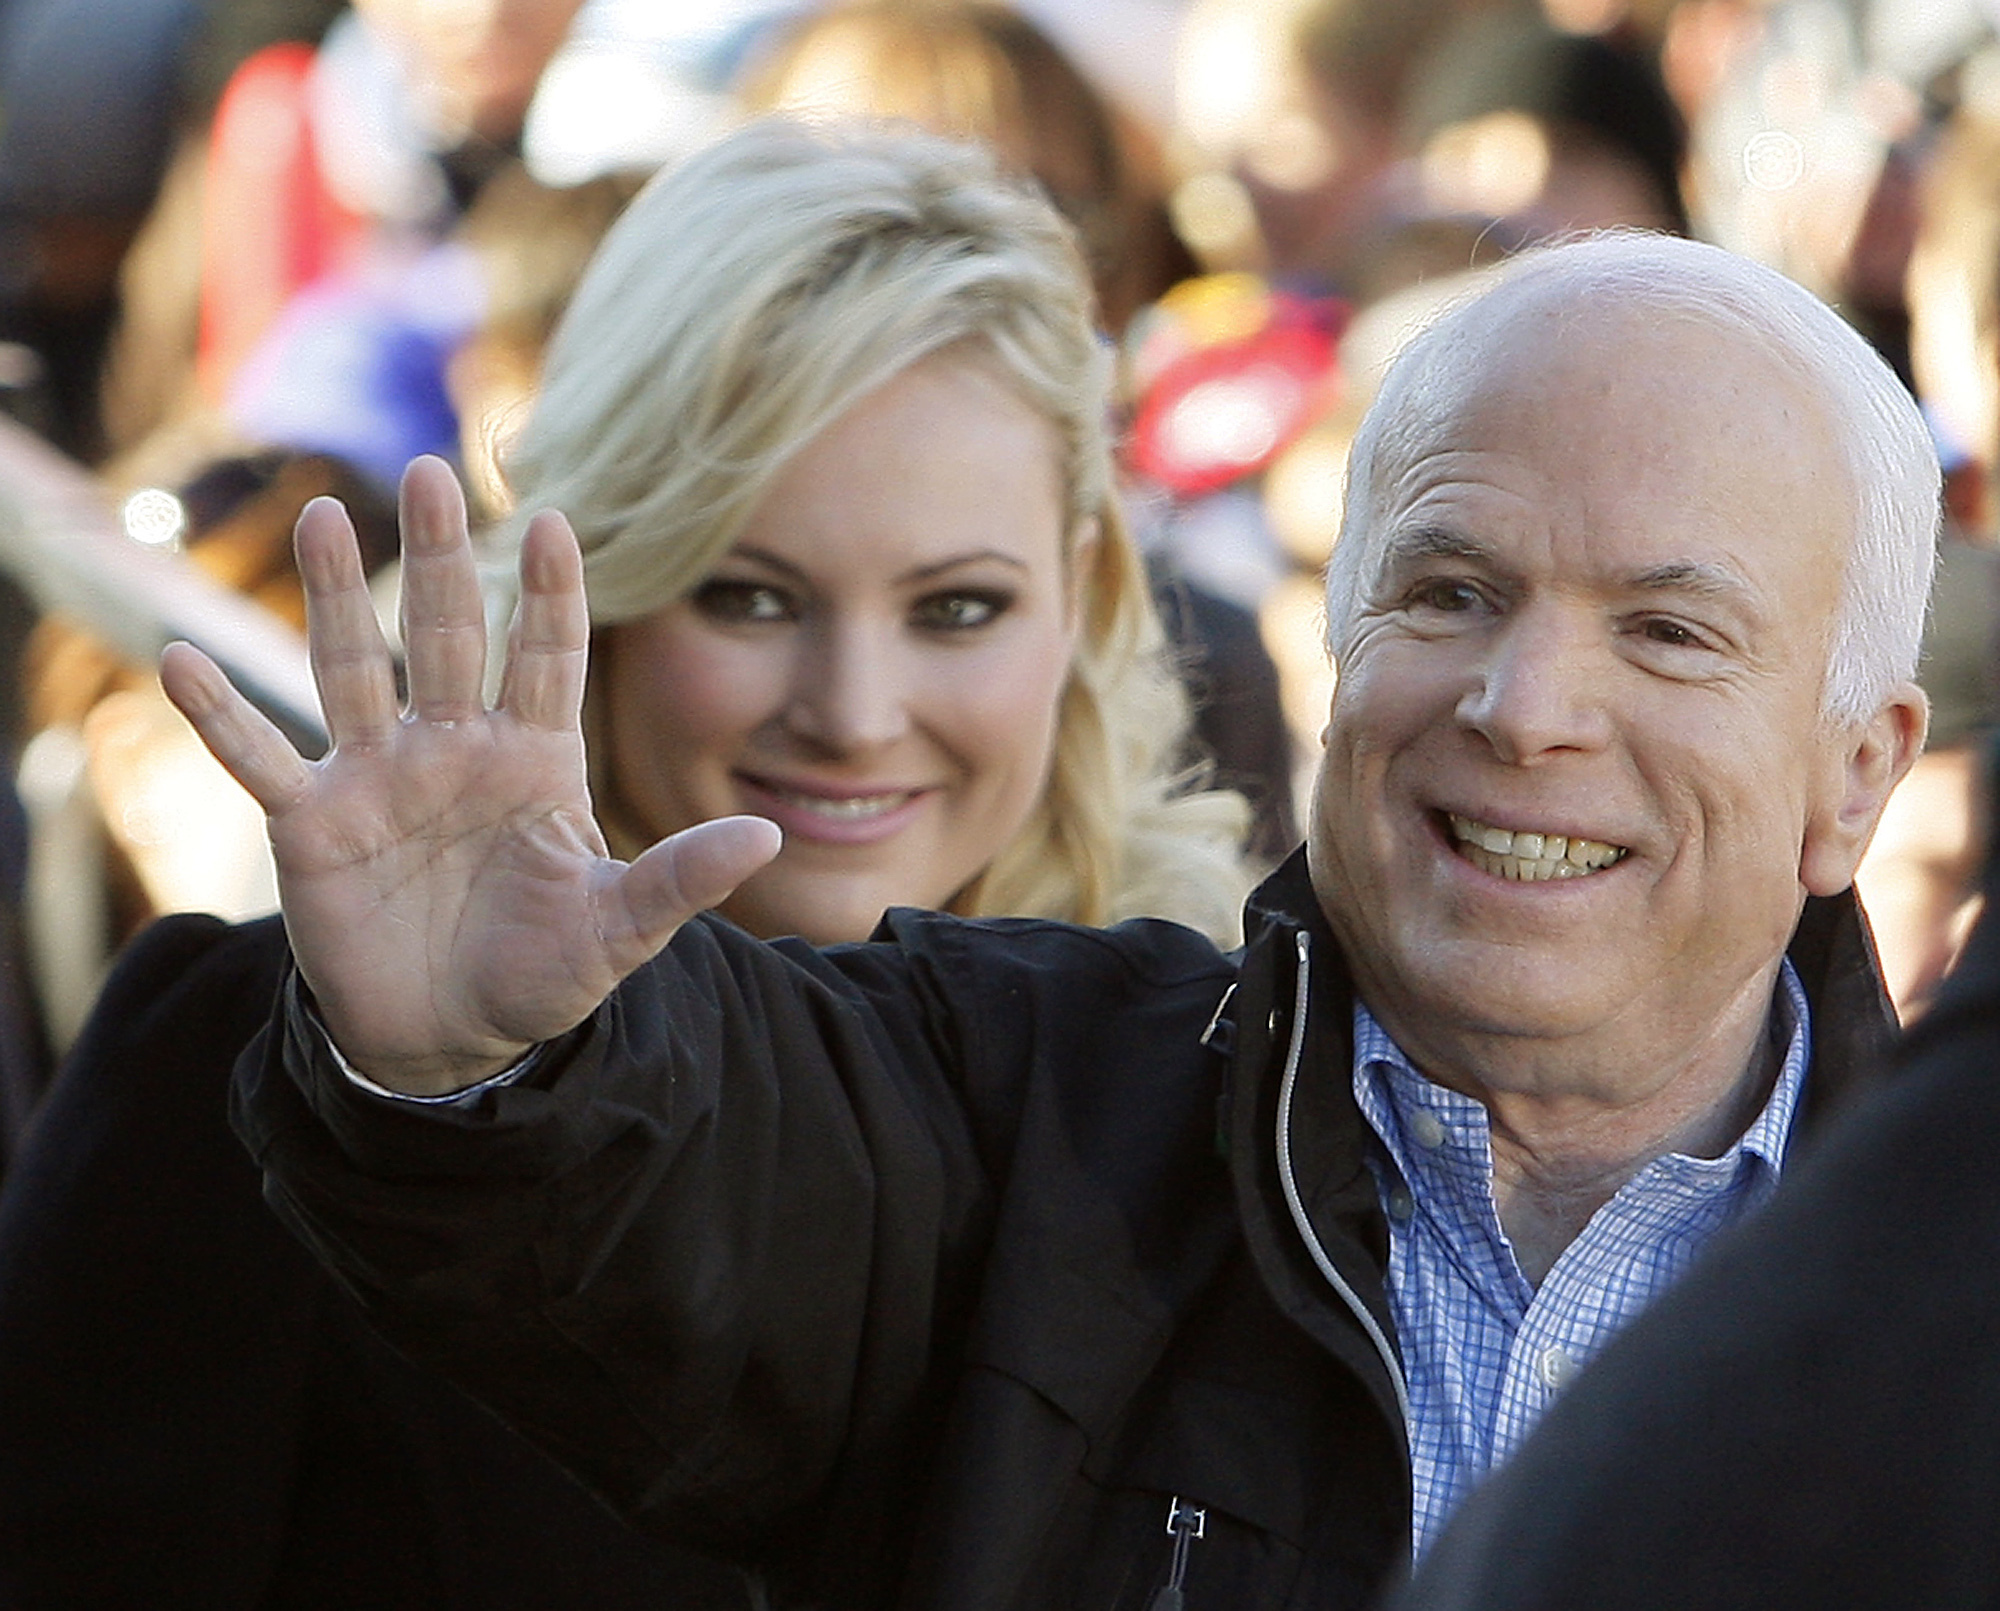 "CORRECTS YEAR TO 2008  FILE - In this Oct. 30, 2008 file photo, Republican presidential candidate Sen. John McCain, R-Ariz., accompanied by his daughter Meghan McCain, waves to supporters as he enters a campaign rally in Defiance, Ohio.  Former Vice President Joe Biden sought to console the daughter of ailing Sen. John McCain after she began crying while discussing her father's cancer on ABC's ""The View."" McCain is battling the same aggressive type of brain cancer that killed Biden's son Beau in 2015.  (AP Photo/Stephan Savoia)"